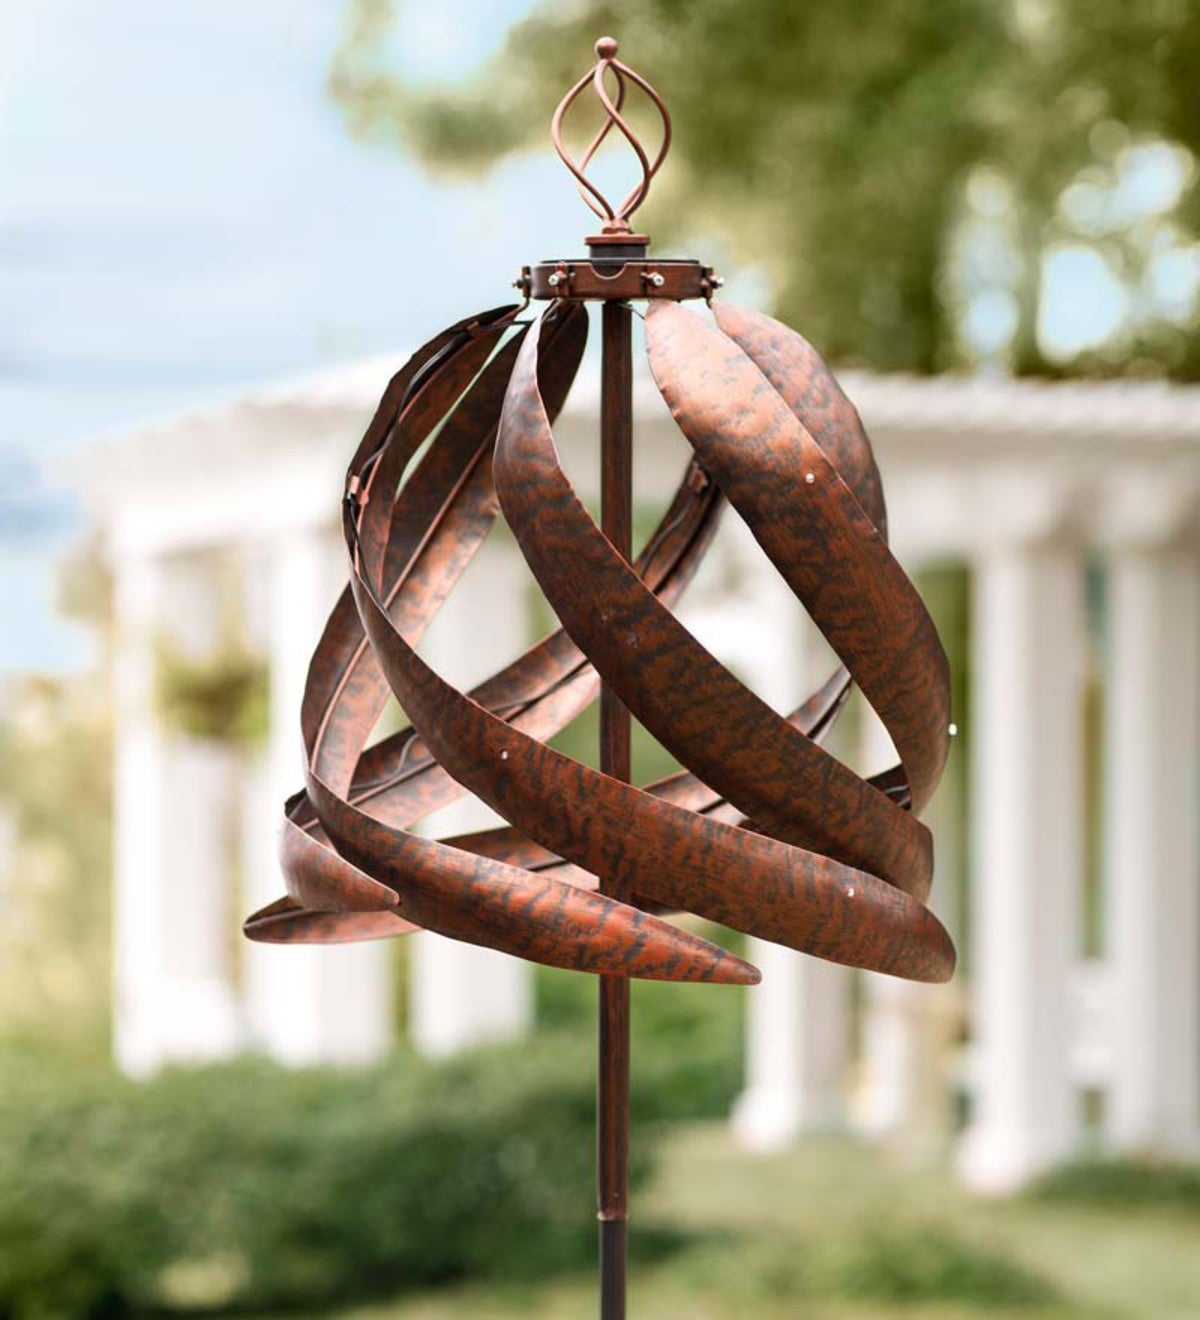 Copper-Colored Spiral Metal Wind Spinner with Solar Lights